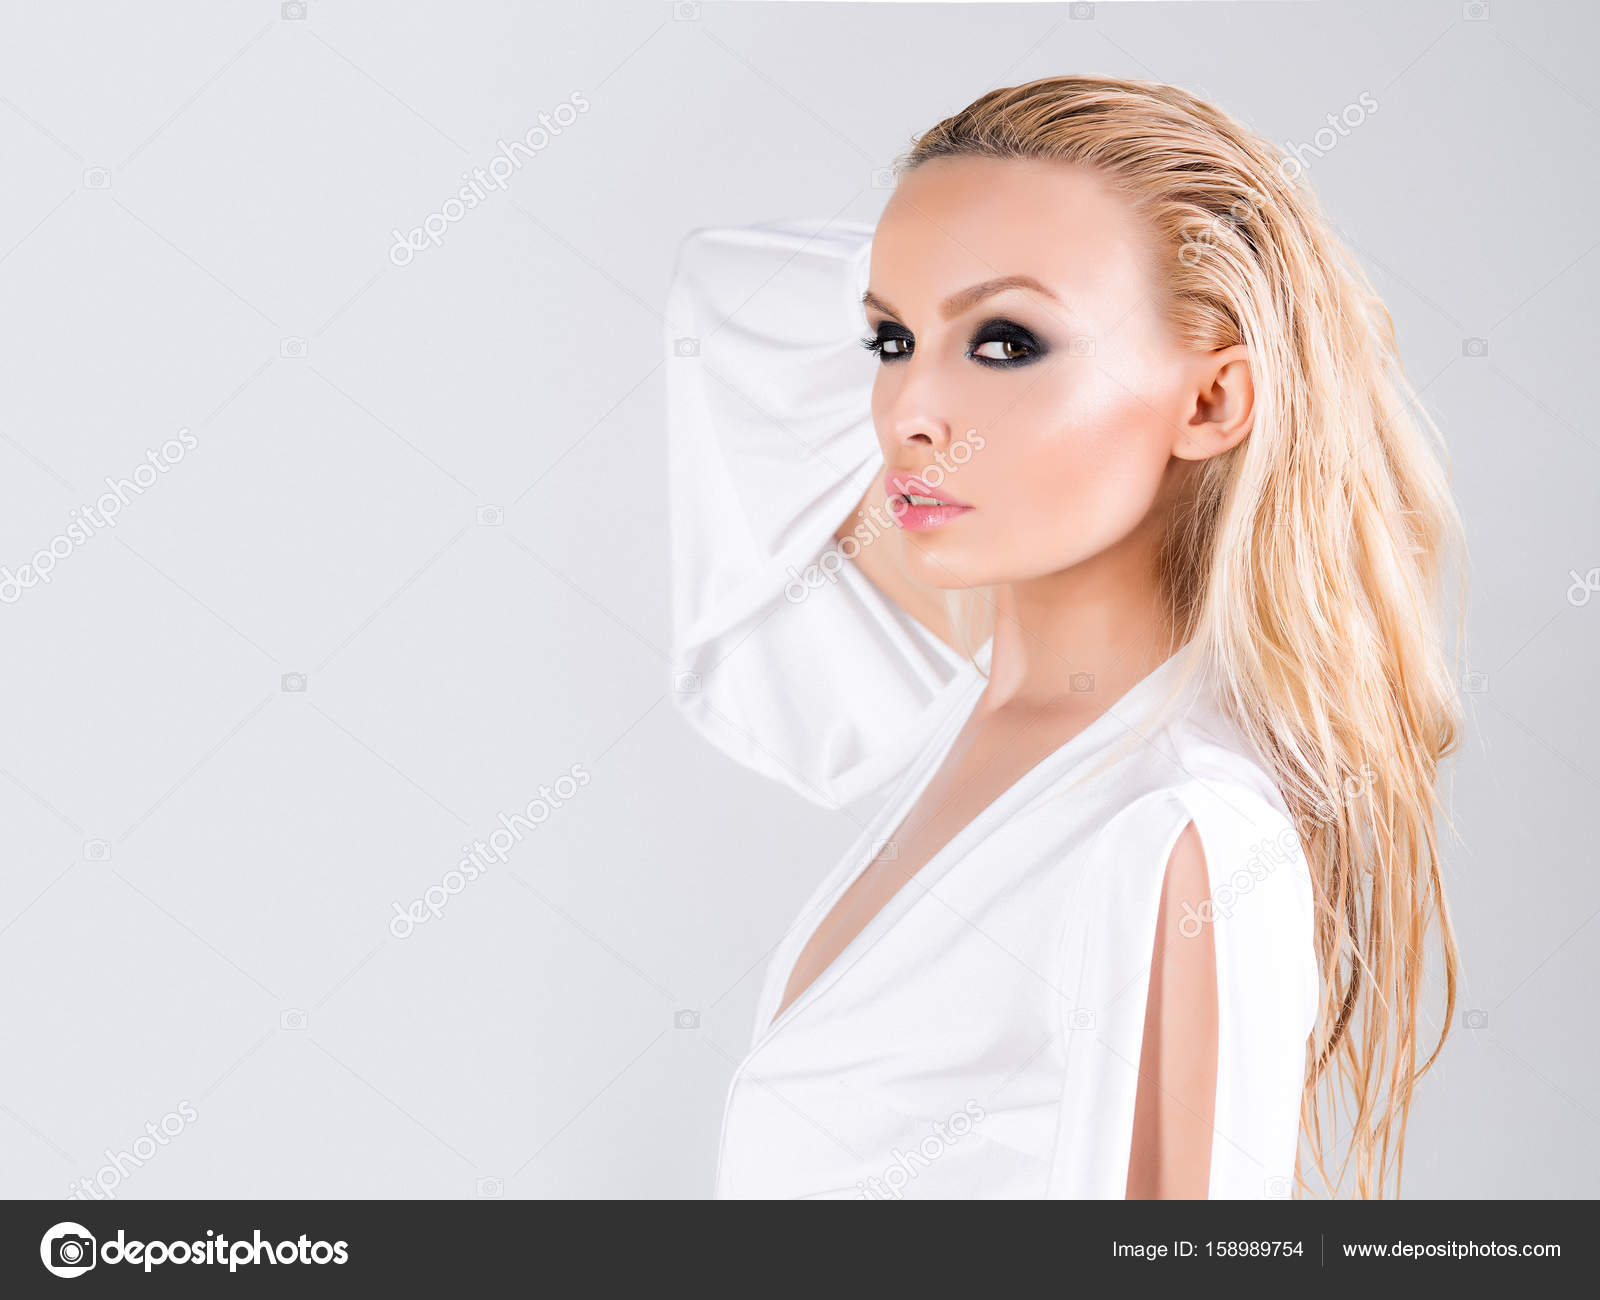 Woman In White Blouse On White Background With Beautiful Make Up